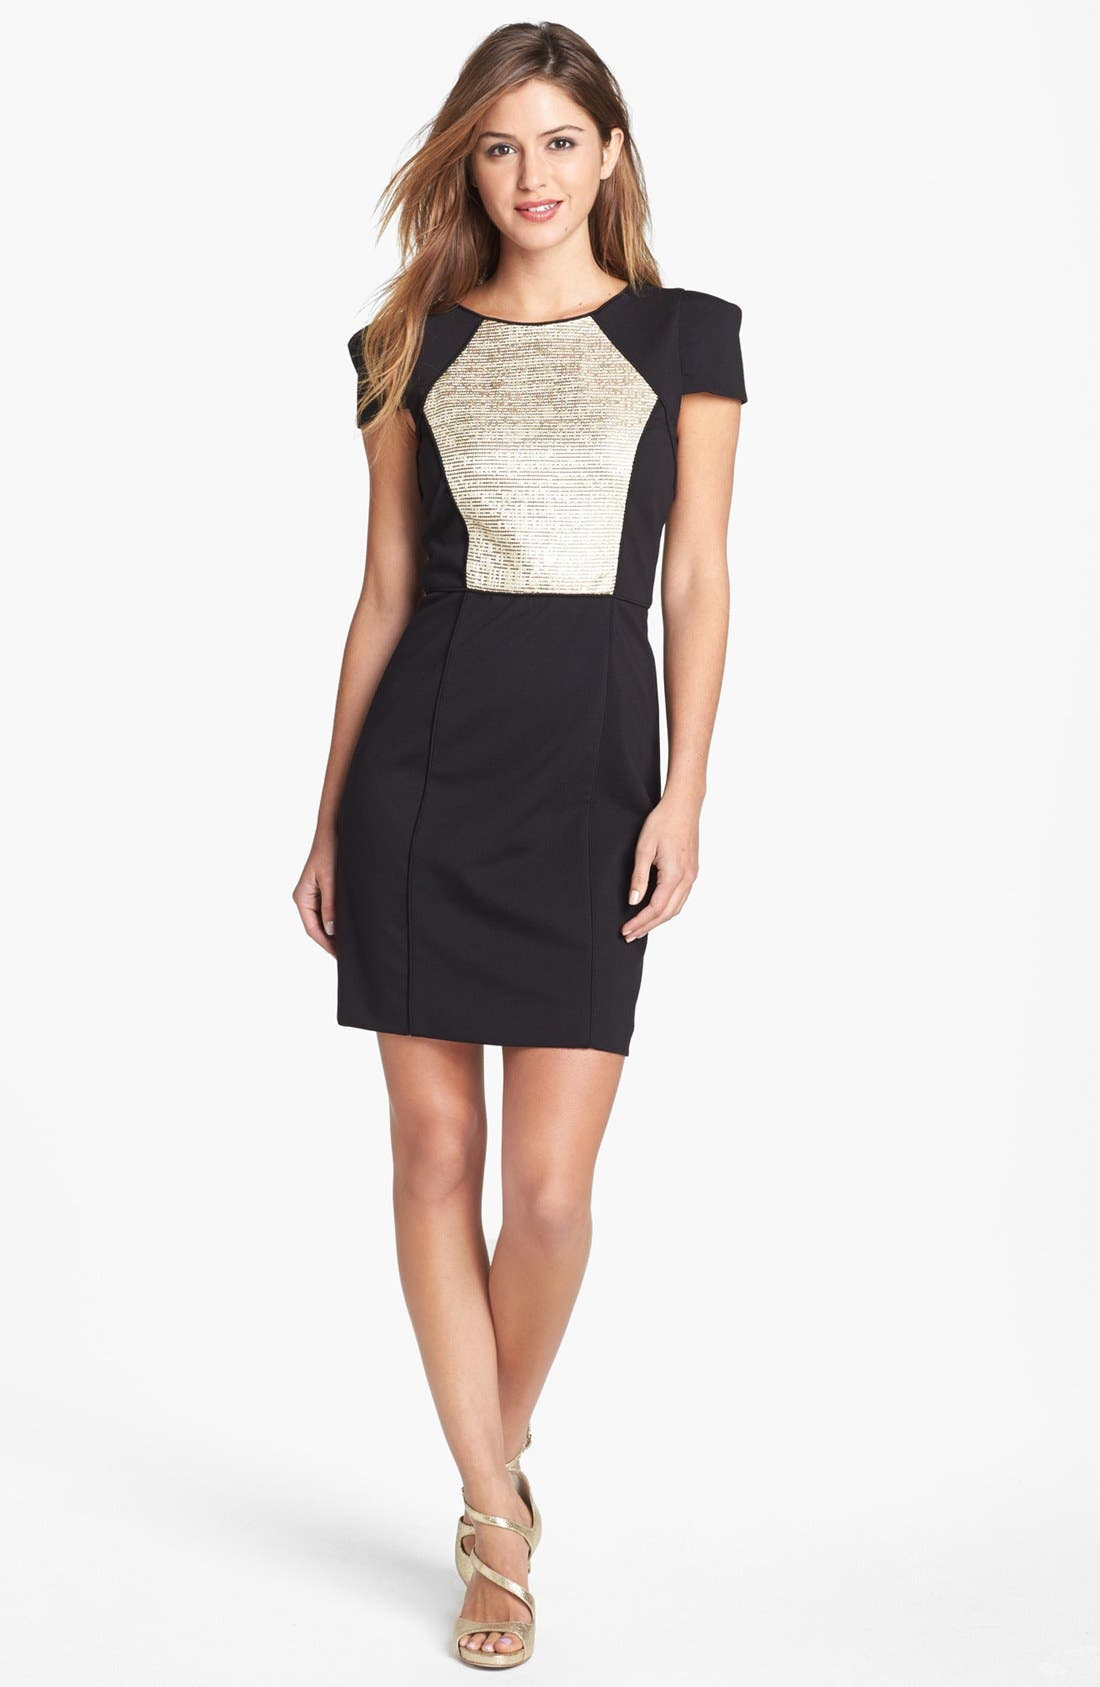 Alternate Image 1 Selected - 4.collective Metallic Panel Knit Sheath Dress